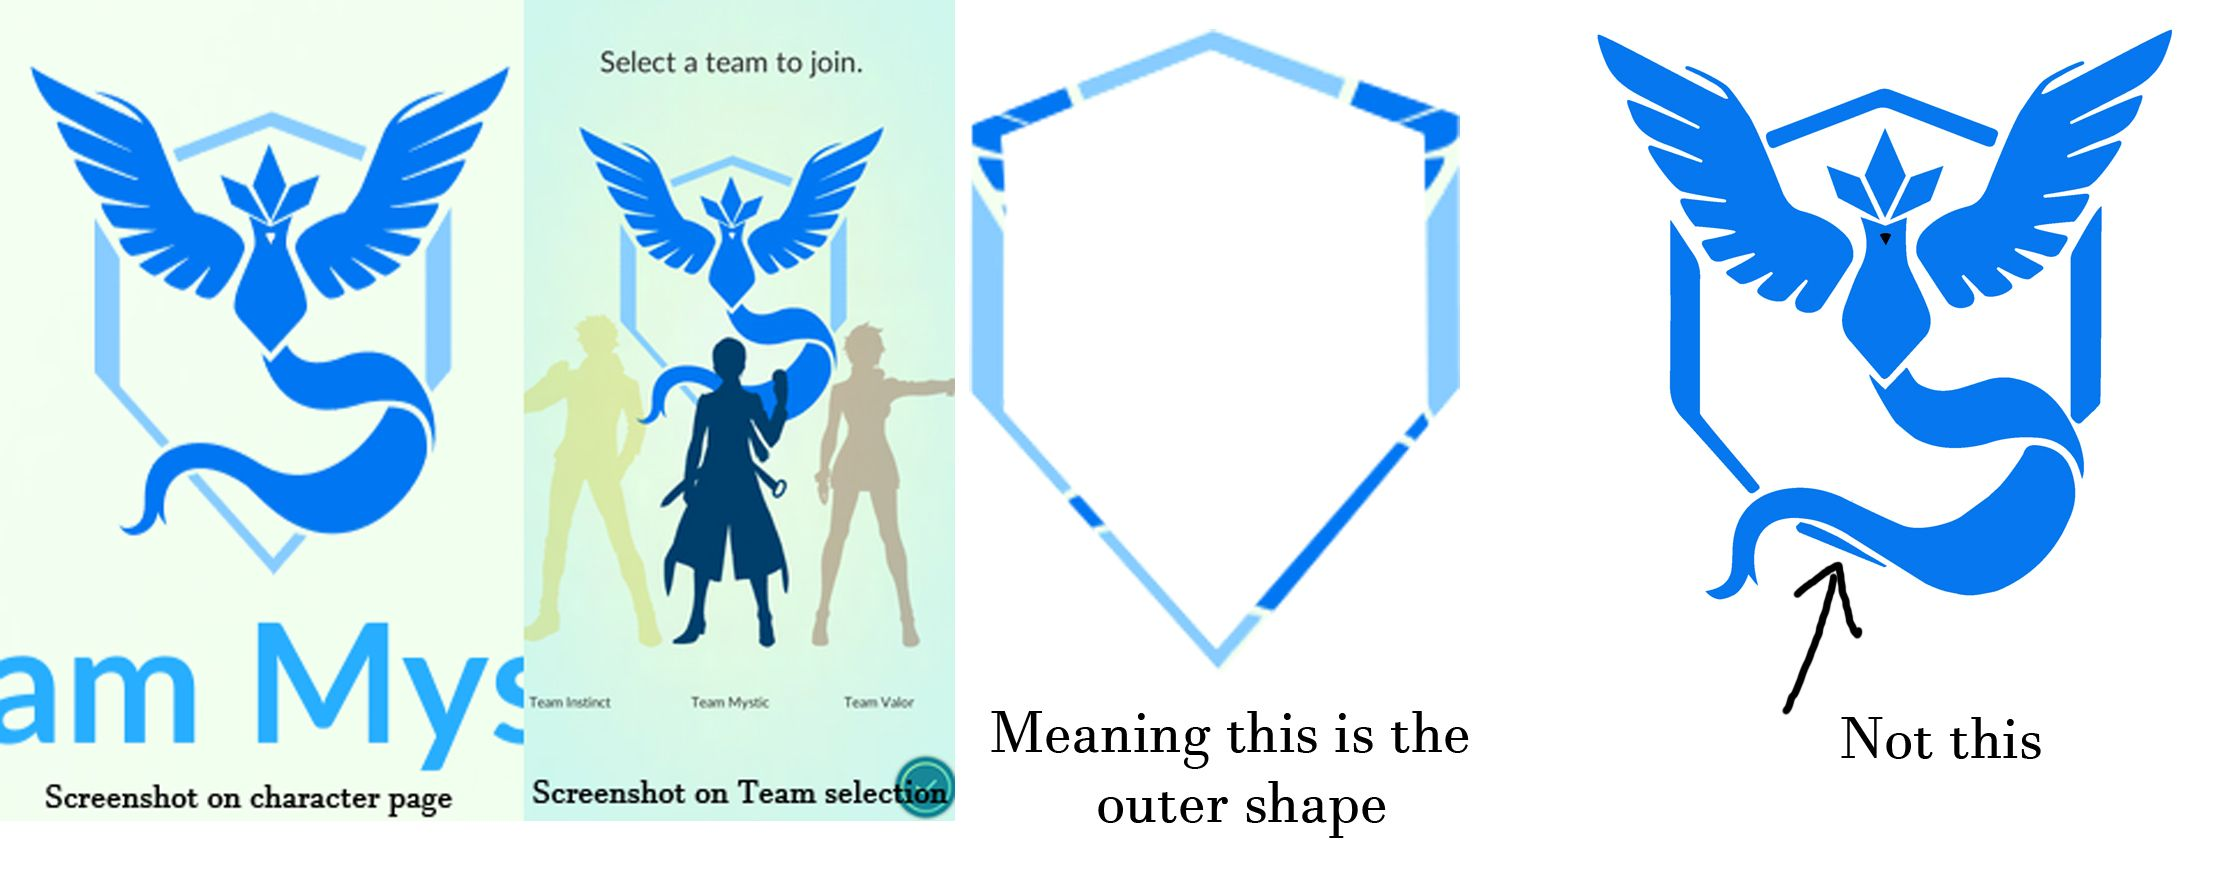 Team Mystic Artists Let S Talk About Our Logo S Shape Mystic Logo Team Mystic Logo Shapes